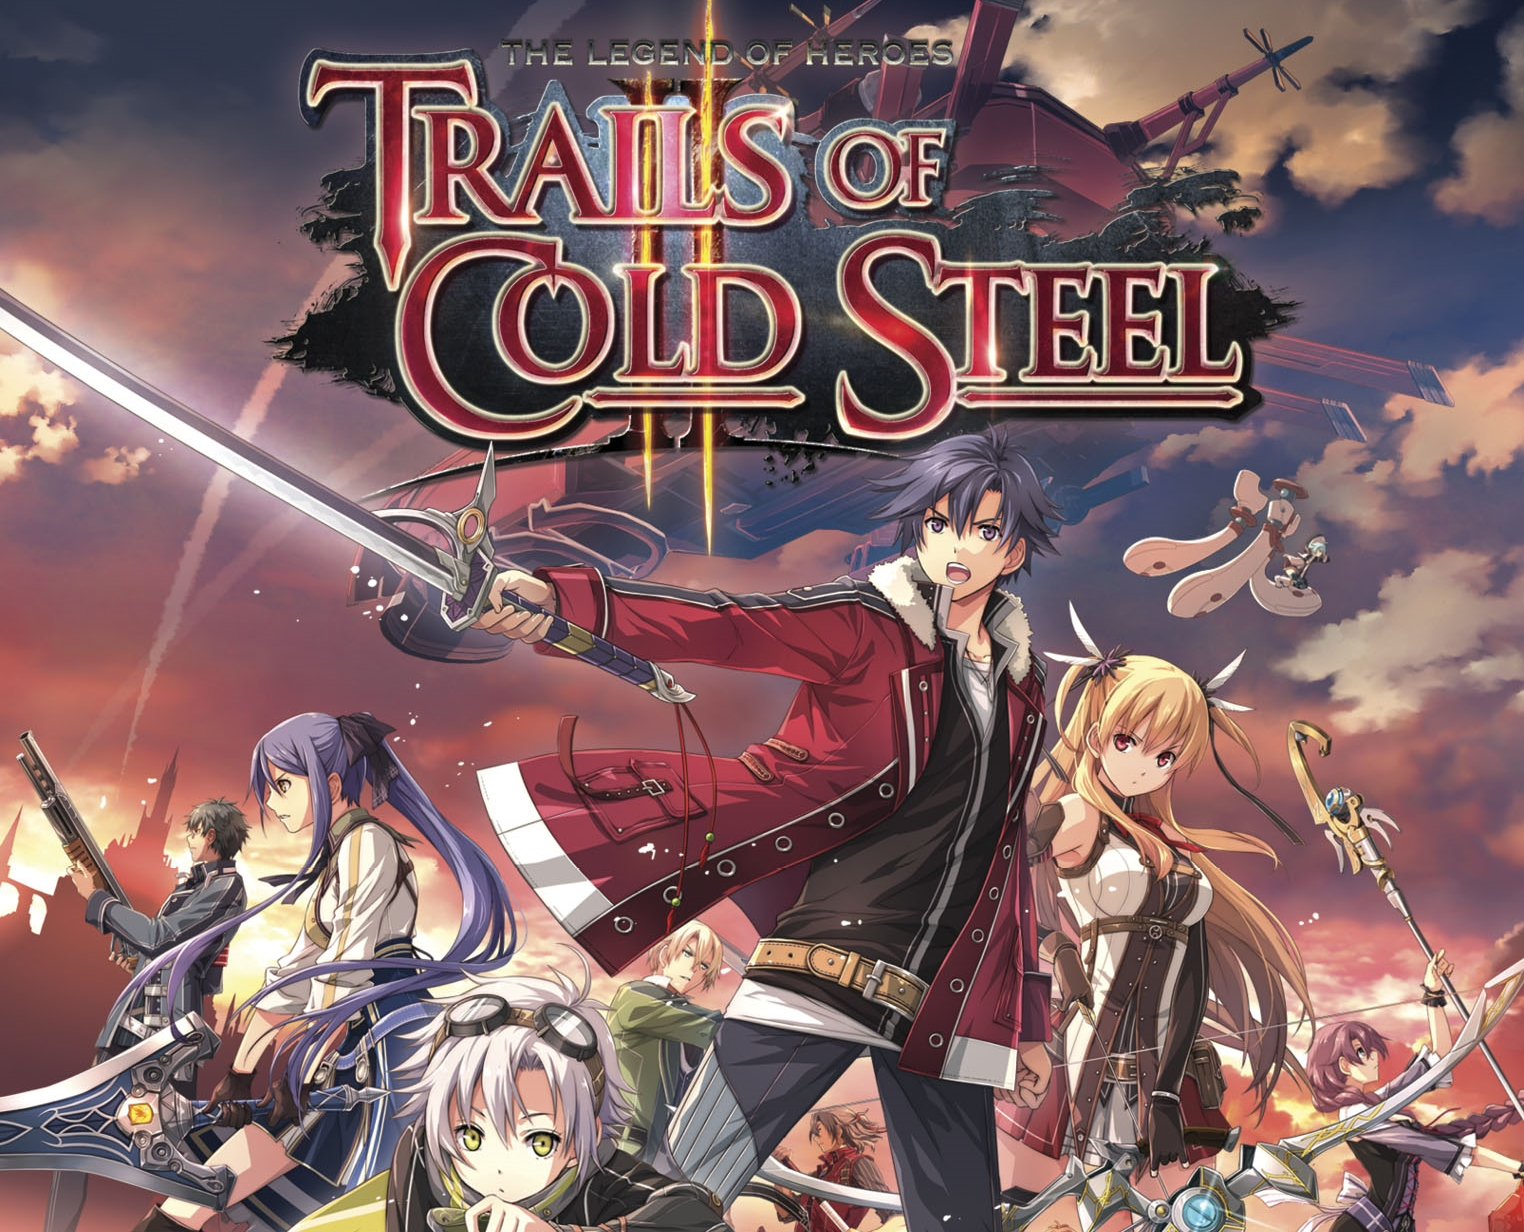 The Legend Of Heroes: Trails Of Cold Steel II review – old school JRPG done right